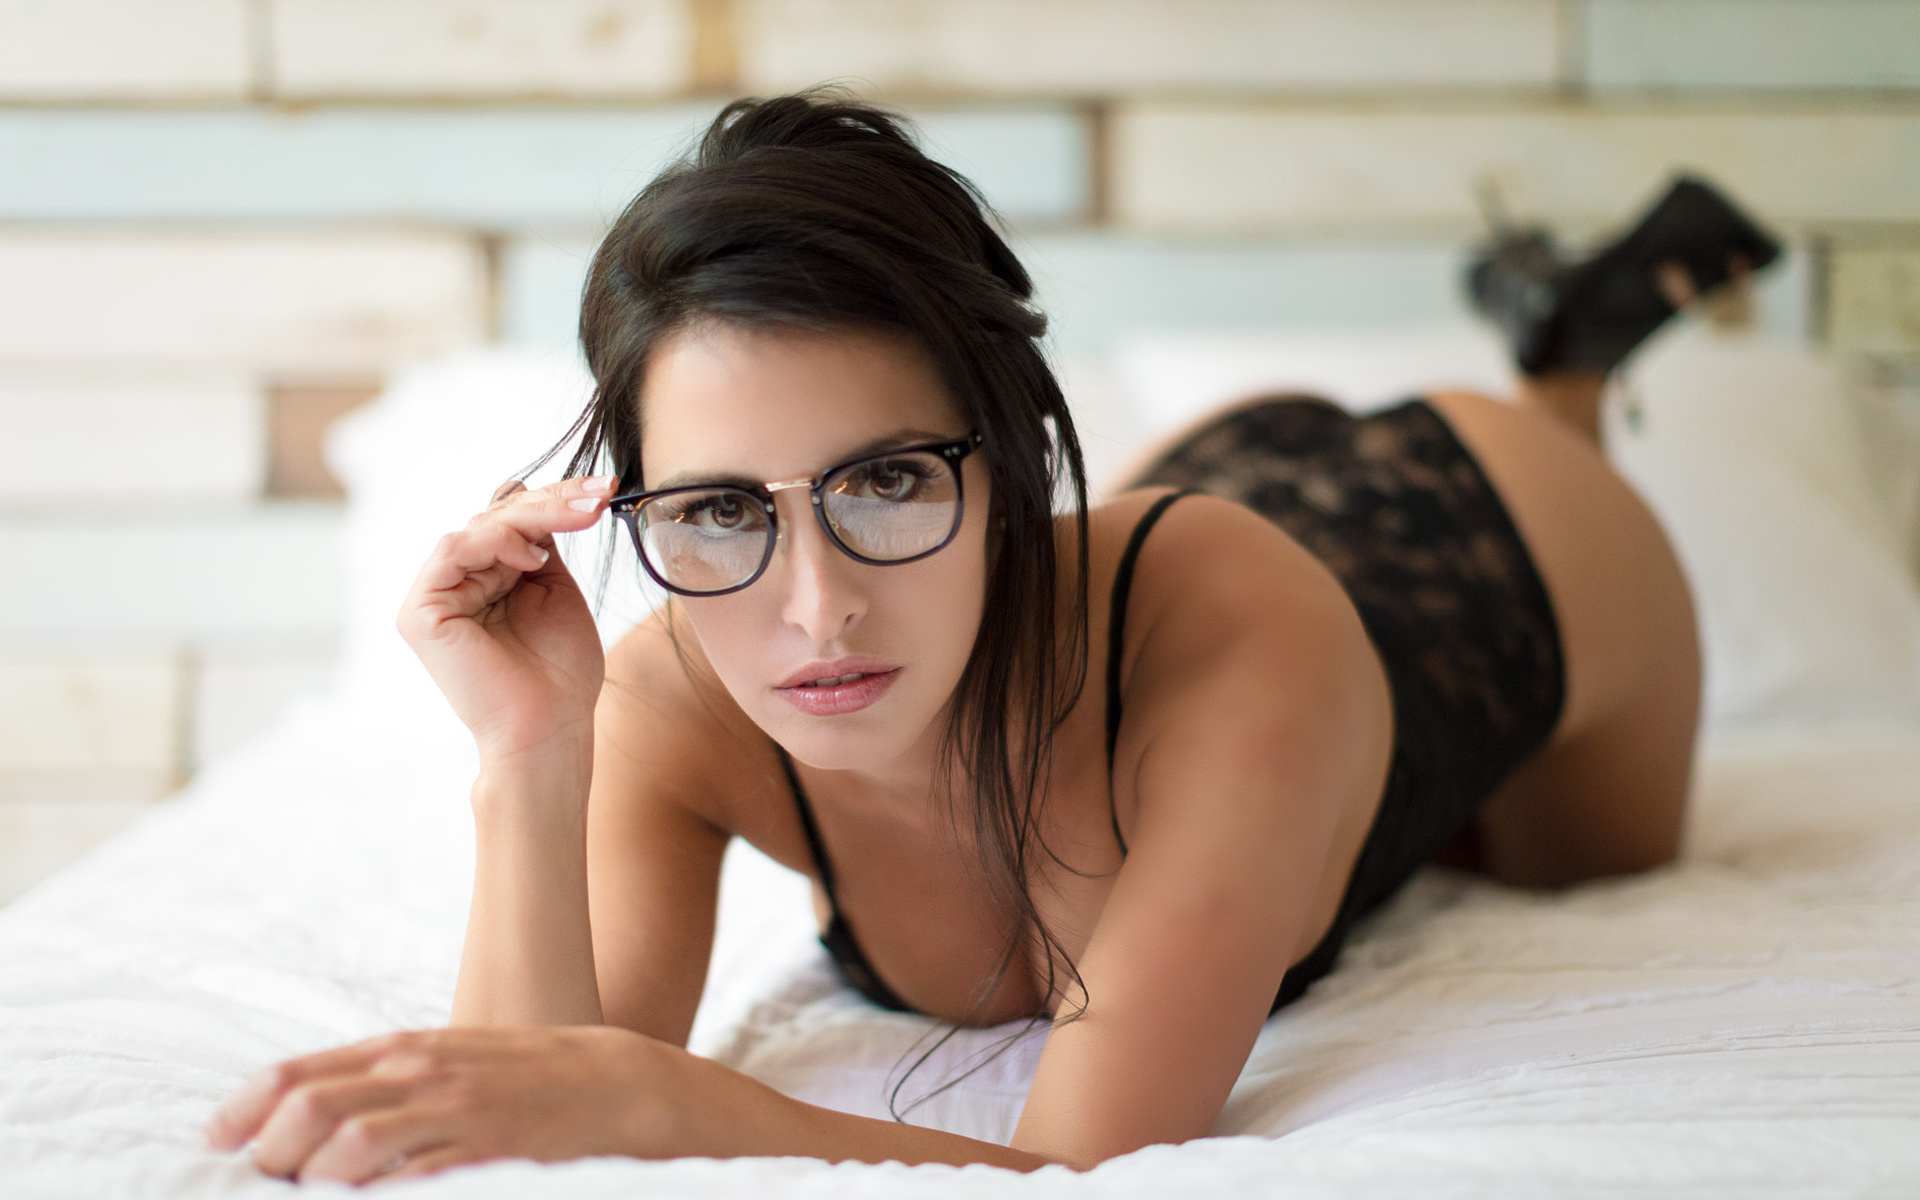 Babeswithglasses cameron cameron loves liking cum off her glasses